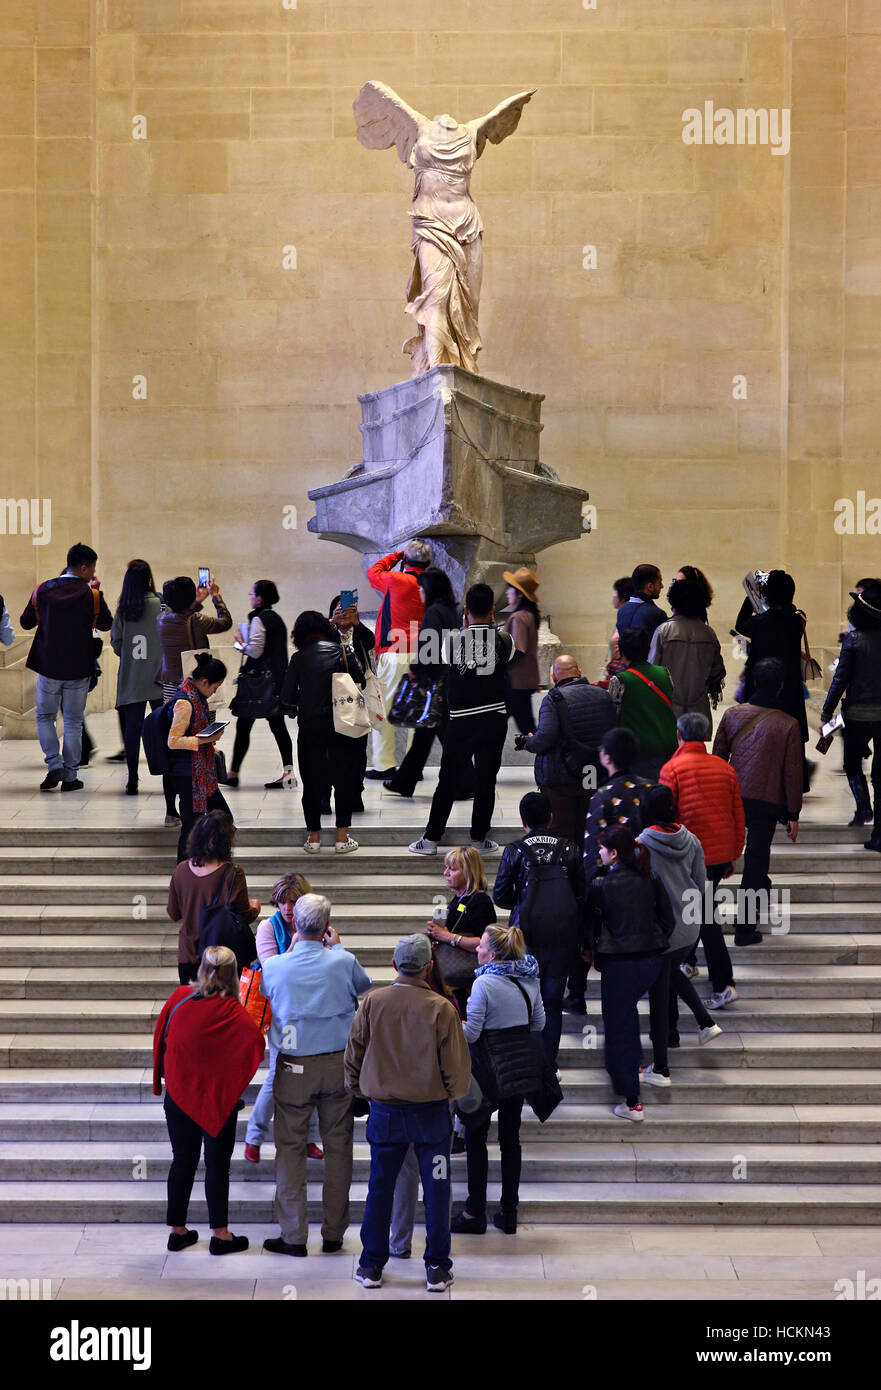 Visitors gathered in front of the